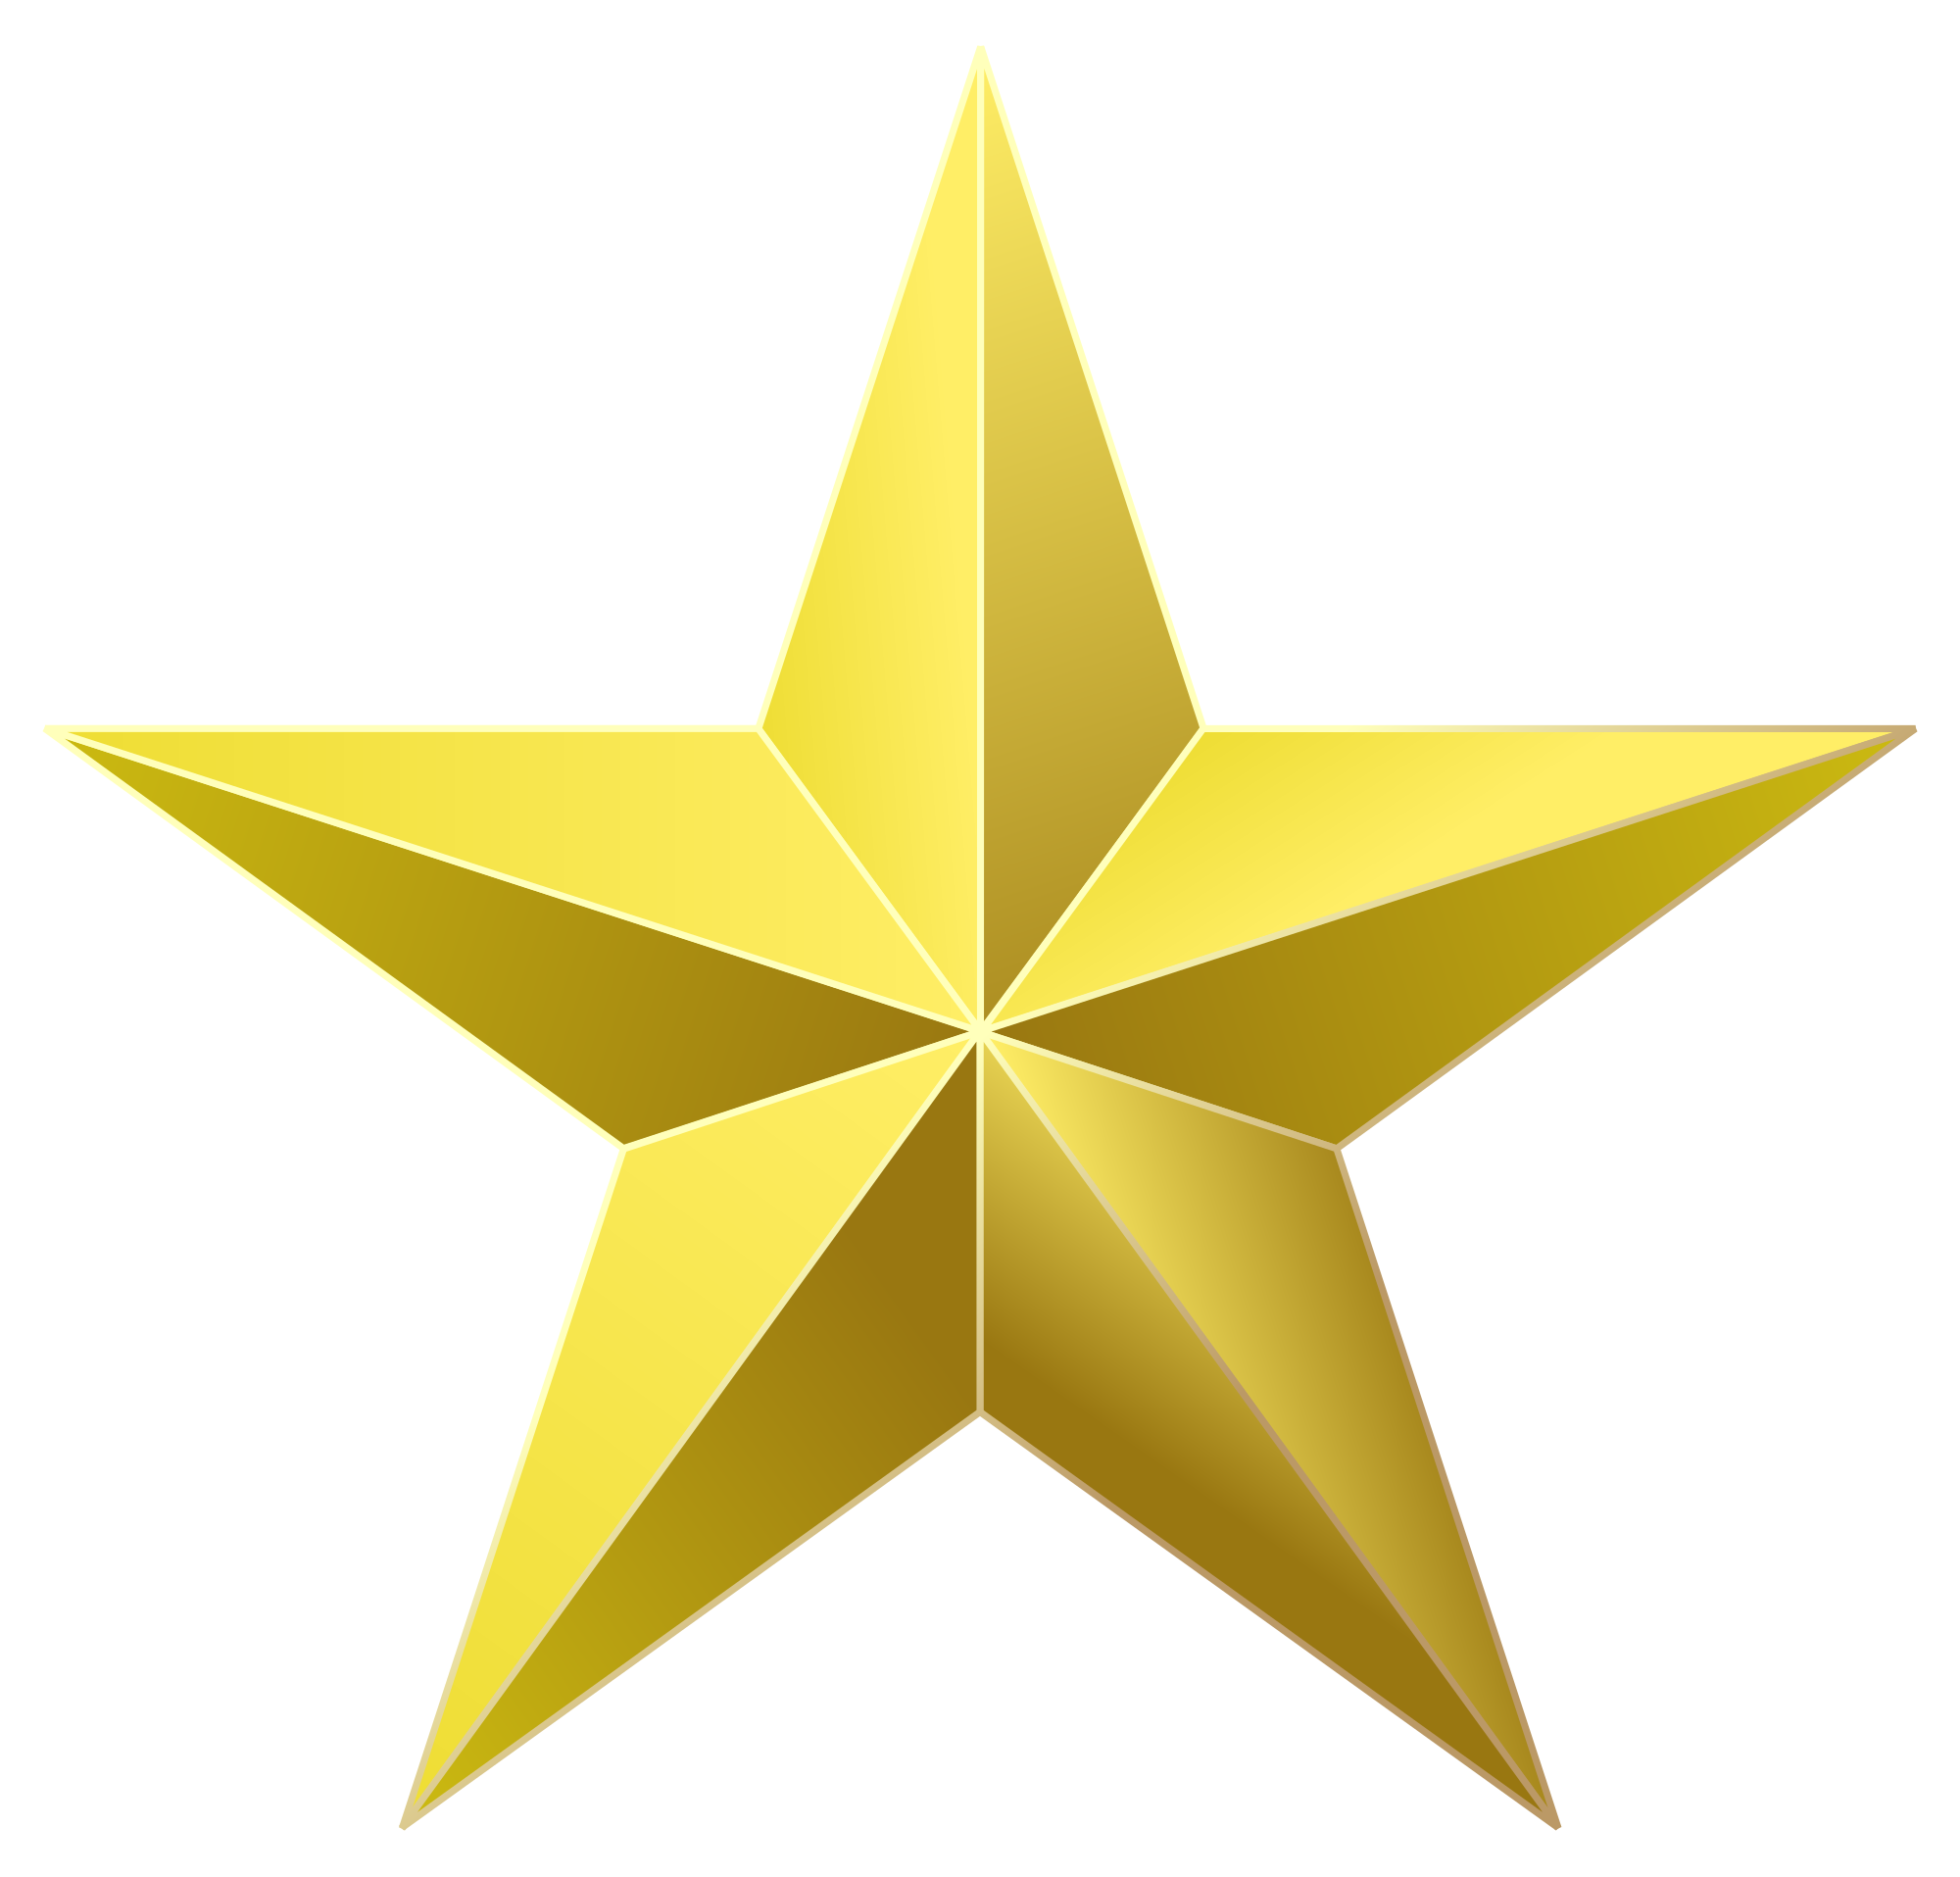 Gold star transparent clipart clipart download File:Golden star 2.svg - Wikimedia Commons clipart download